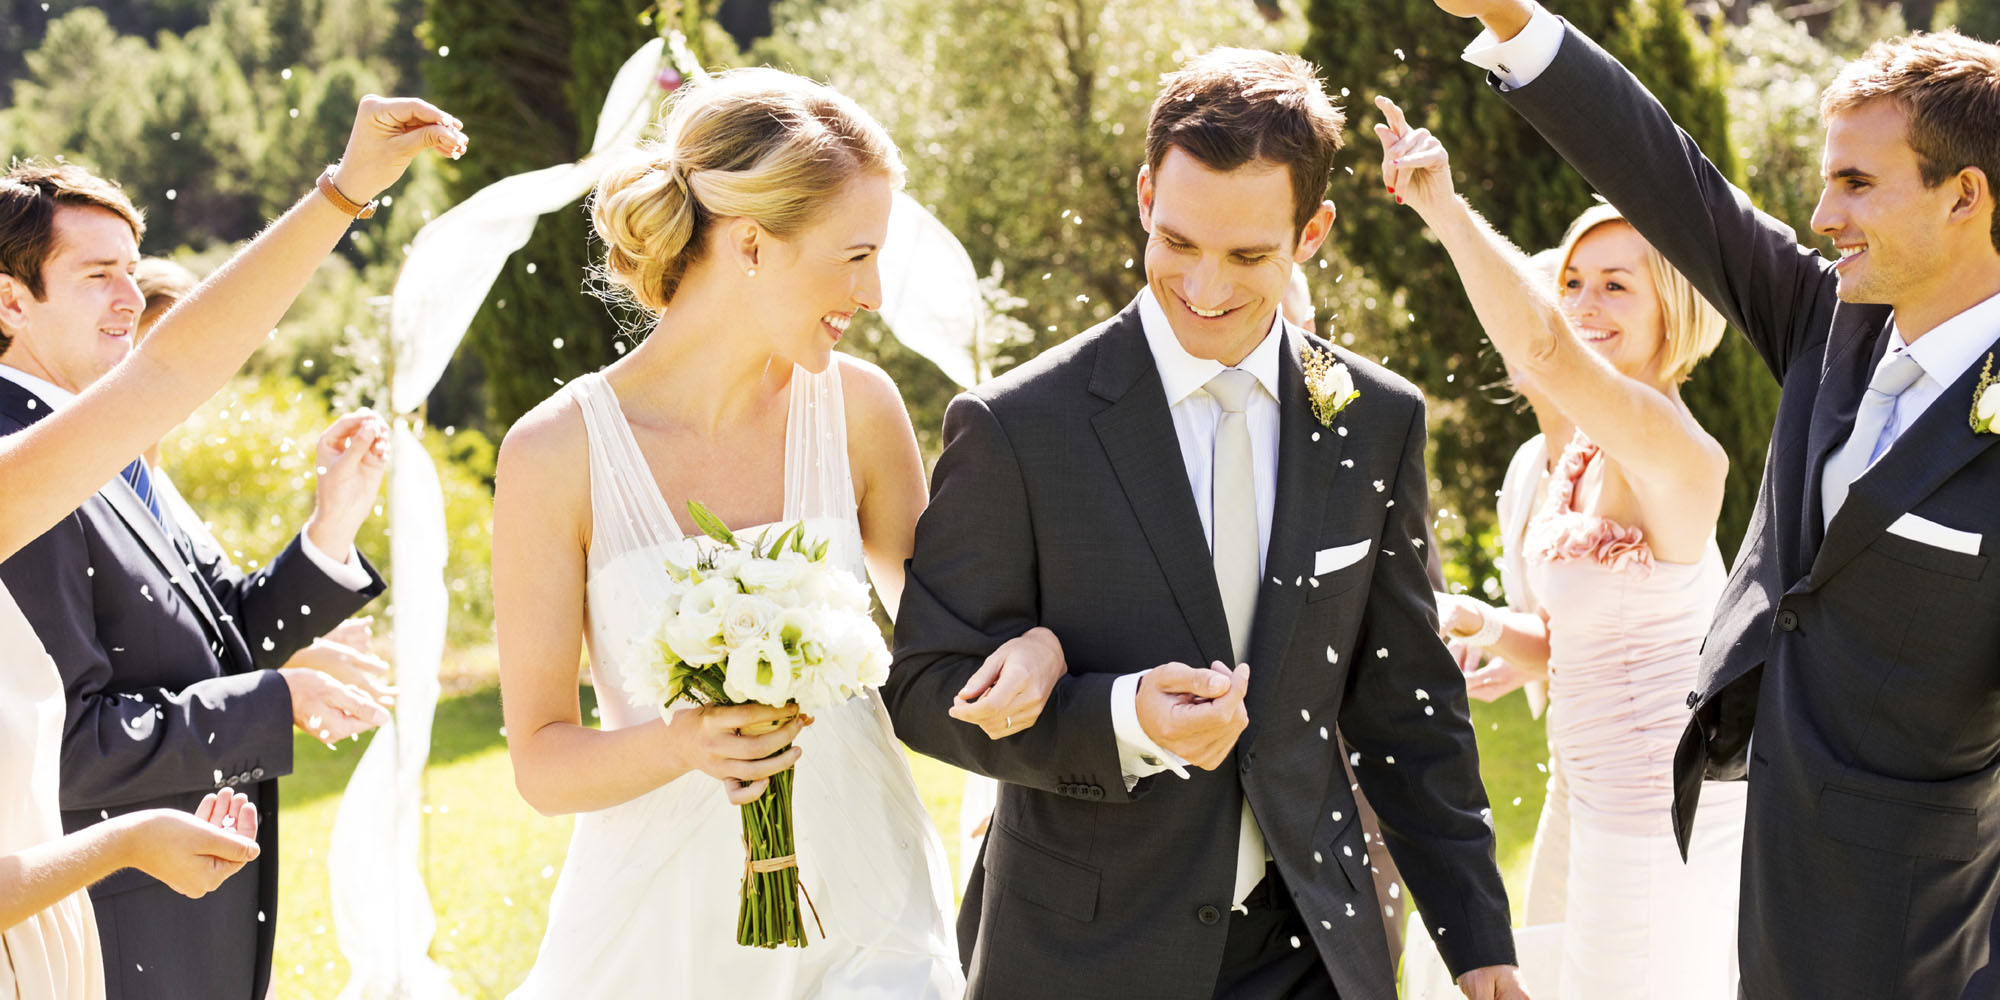 Couple Walking While Guests Throwing Confetti On Them